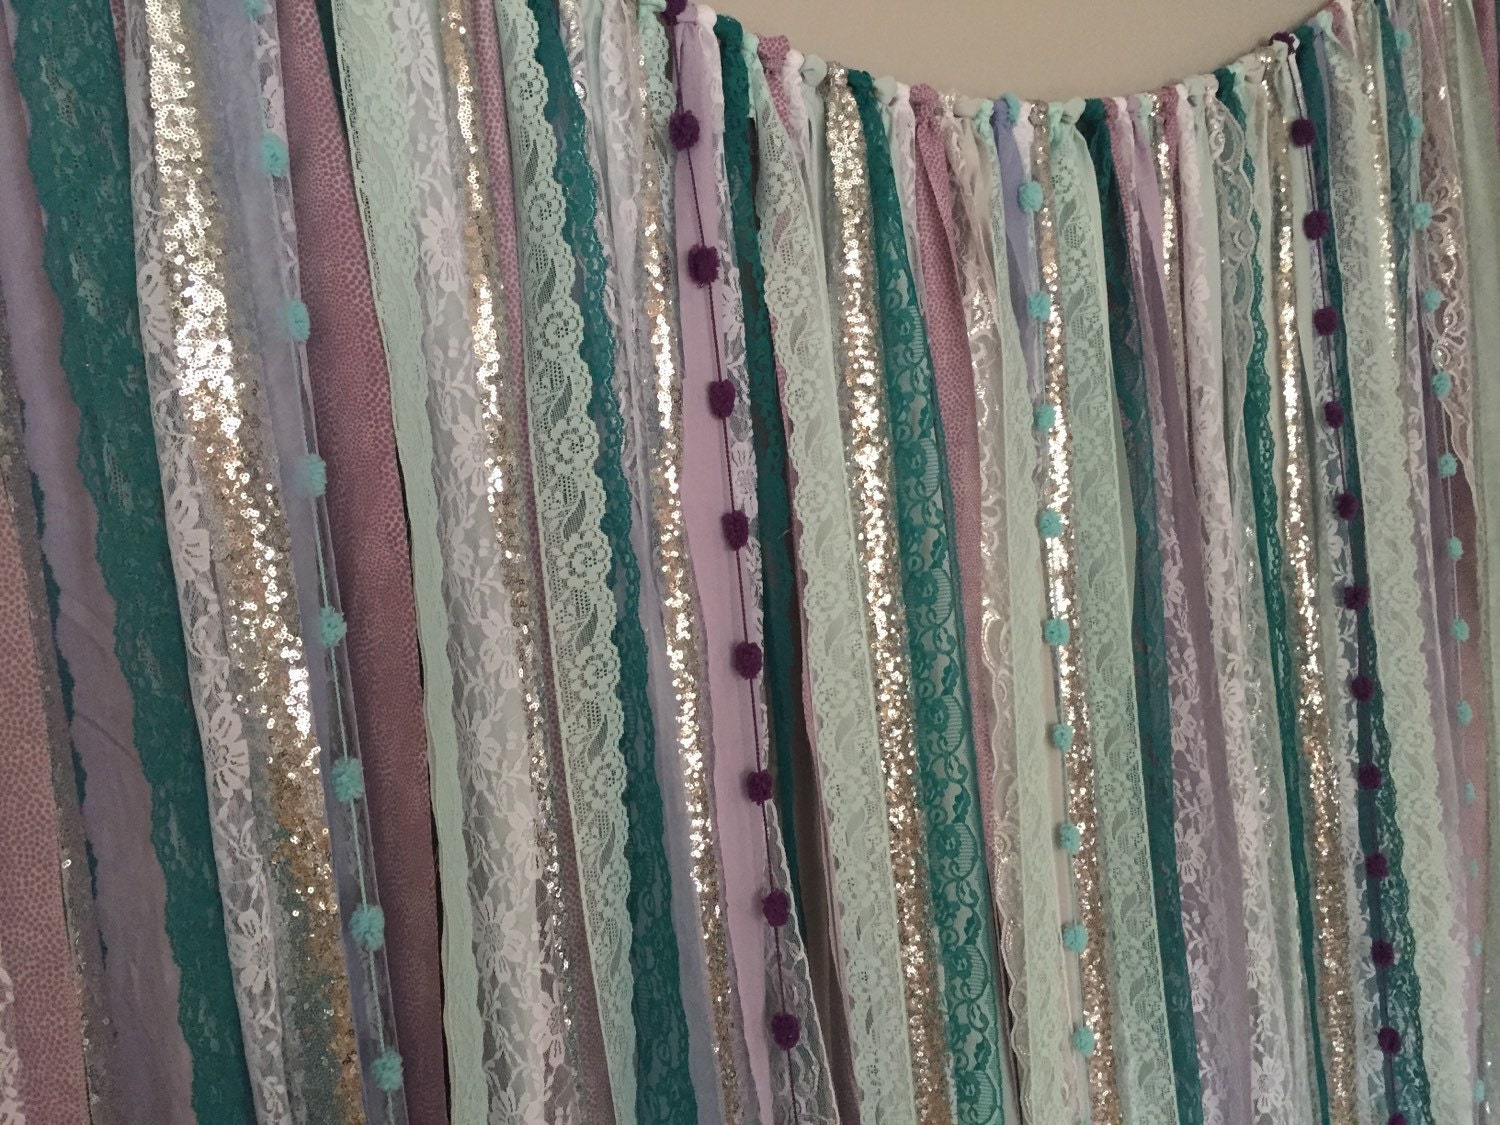 Shower Curtains For Clawfoot Tub Peach and Teal Curtains